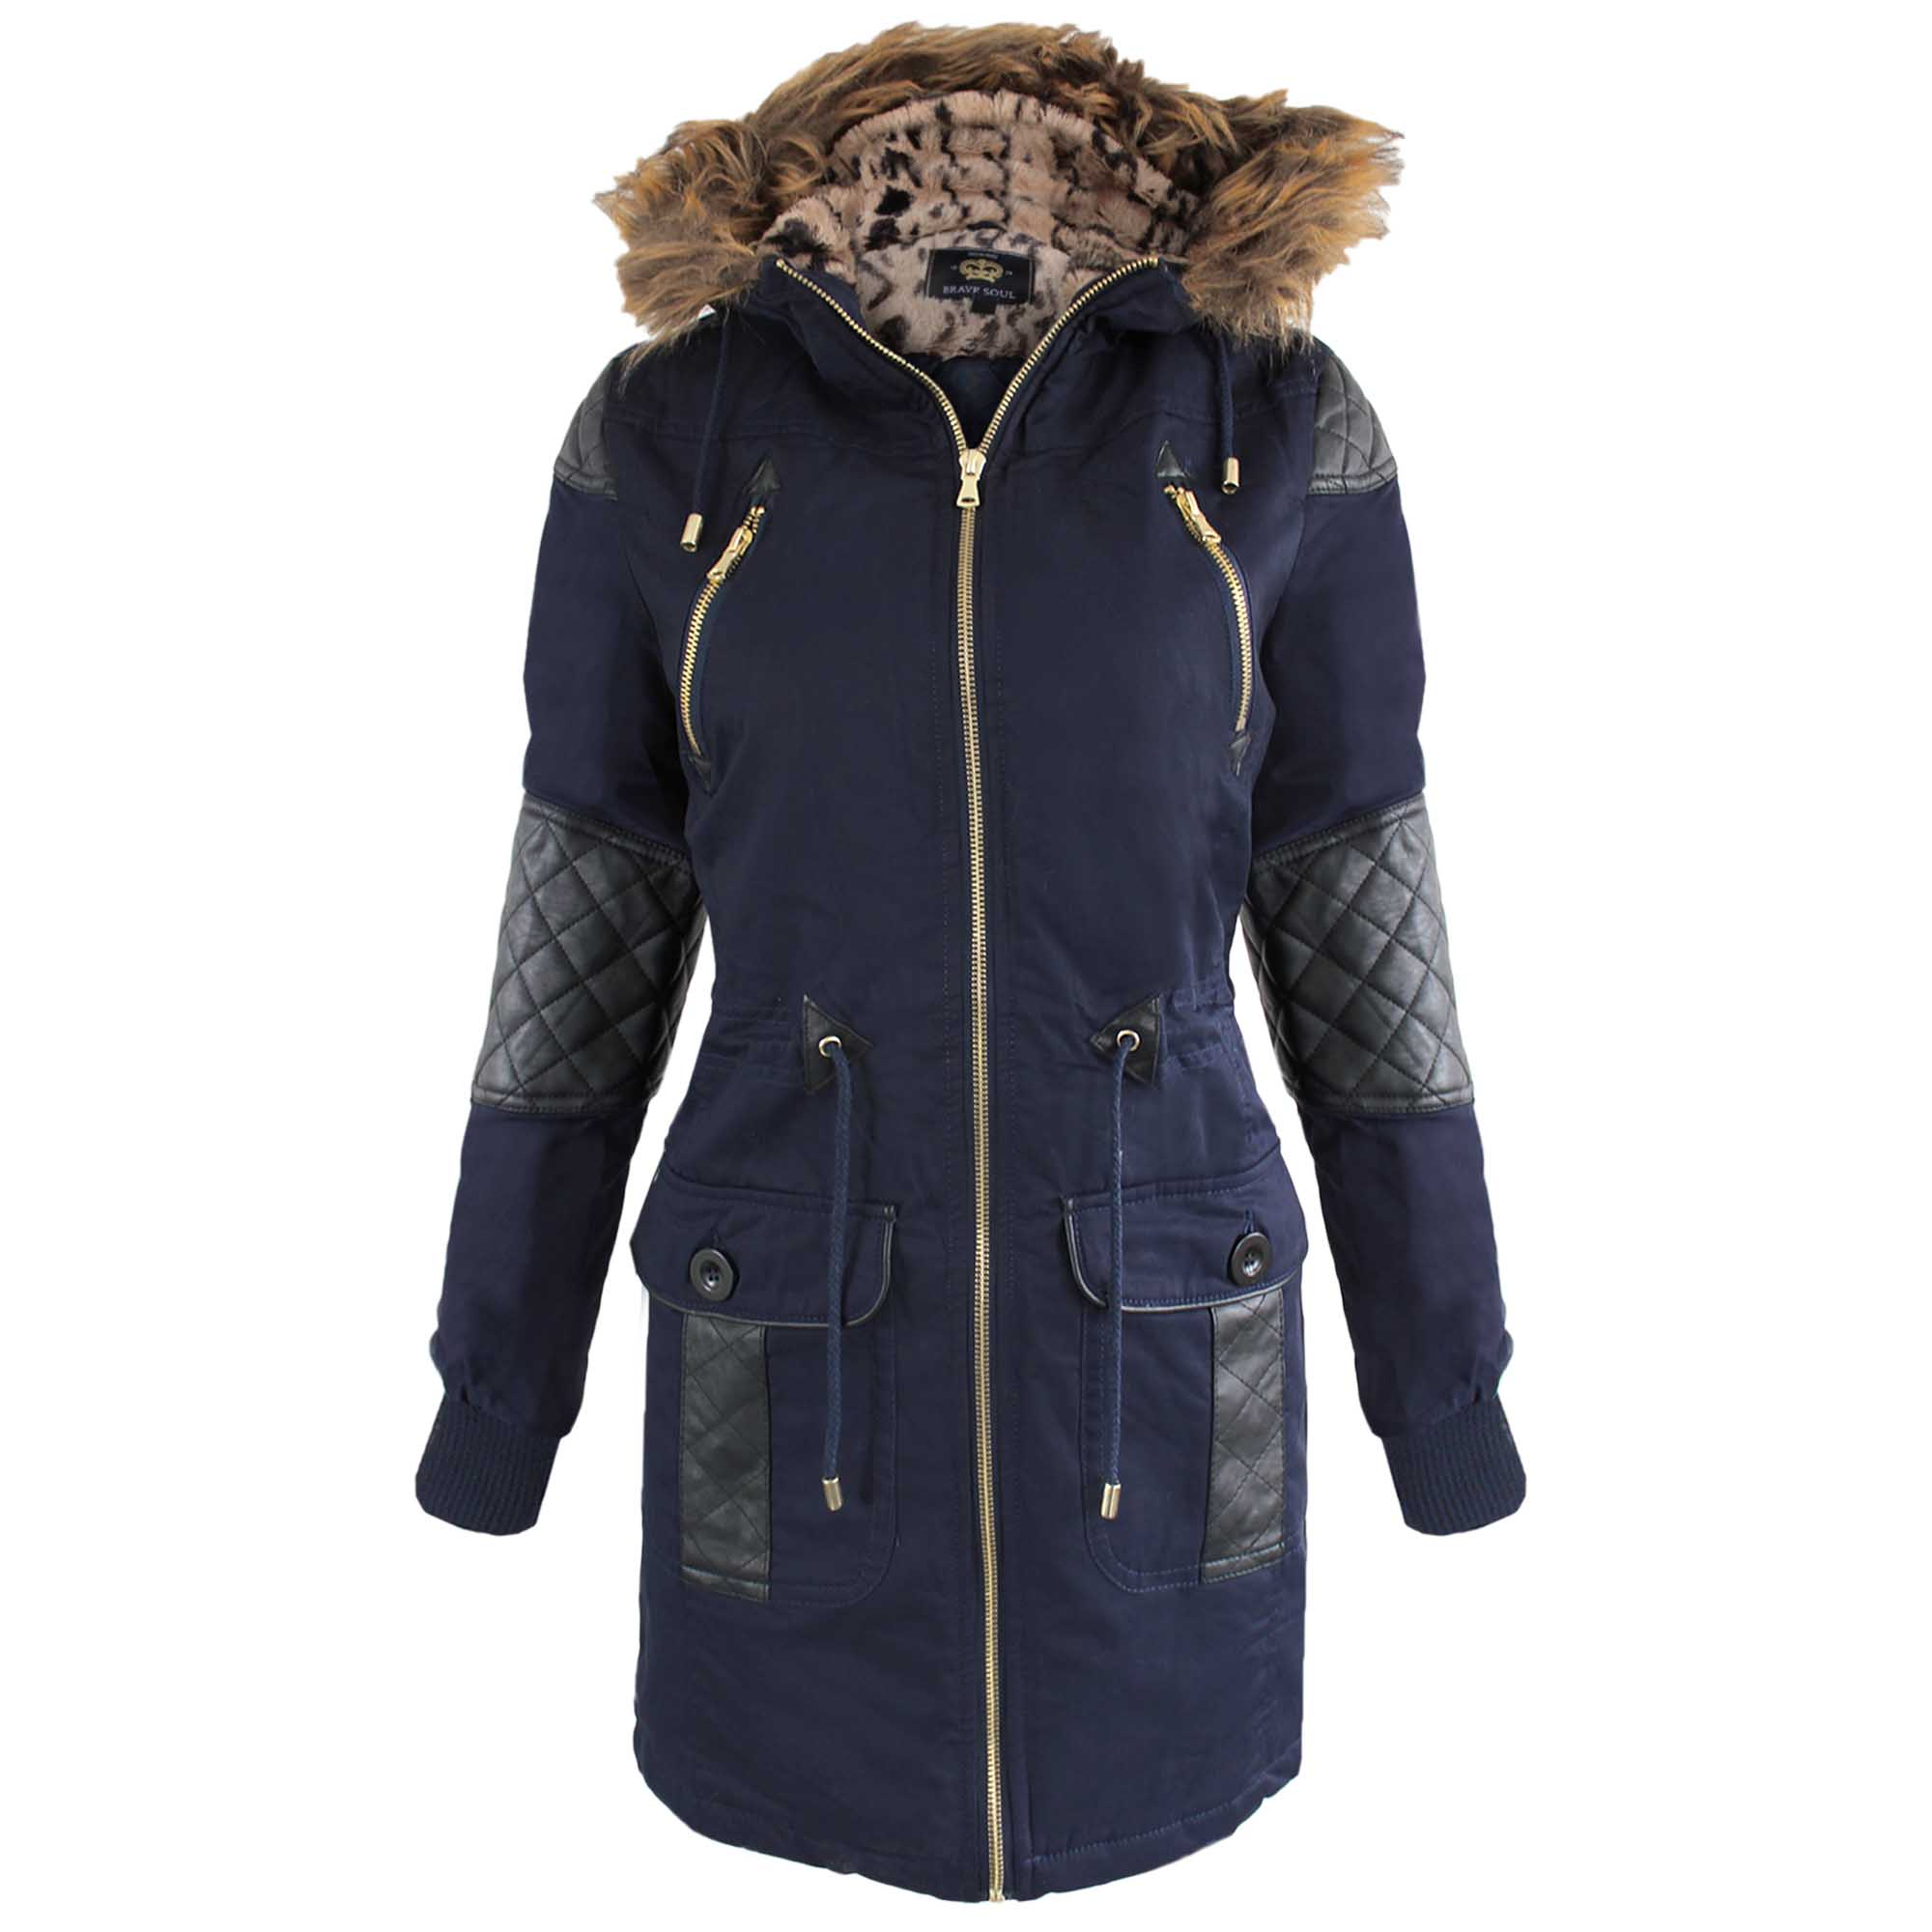 Overstock uses cookies to ensure you get the best experience on our site. If you continue on our site, you consent to the use of such cookies. Learn more. OK Parkas. Clothing & Shoes / Women Rachel Rachel Roy Womens Parka Coat Faux Fur Water Repellent. Quick View.